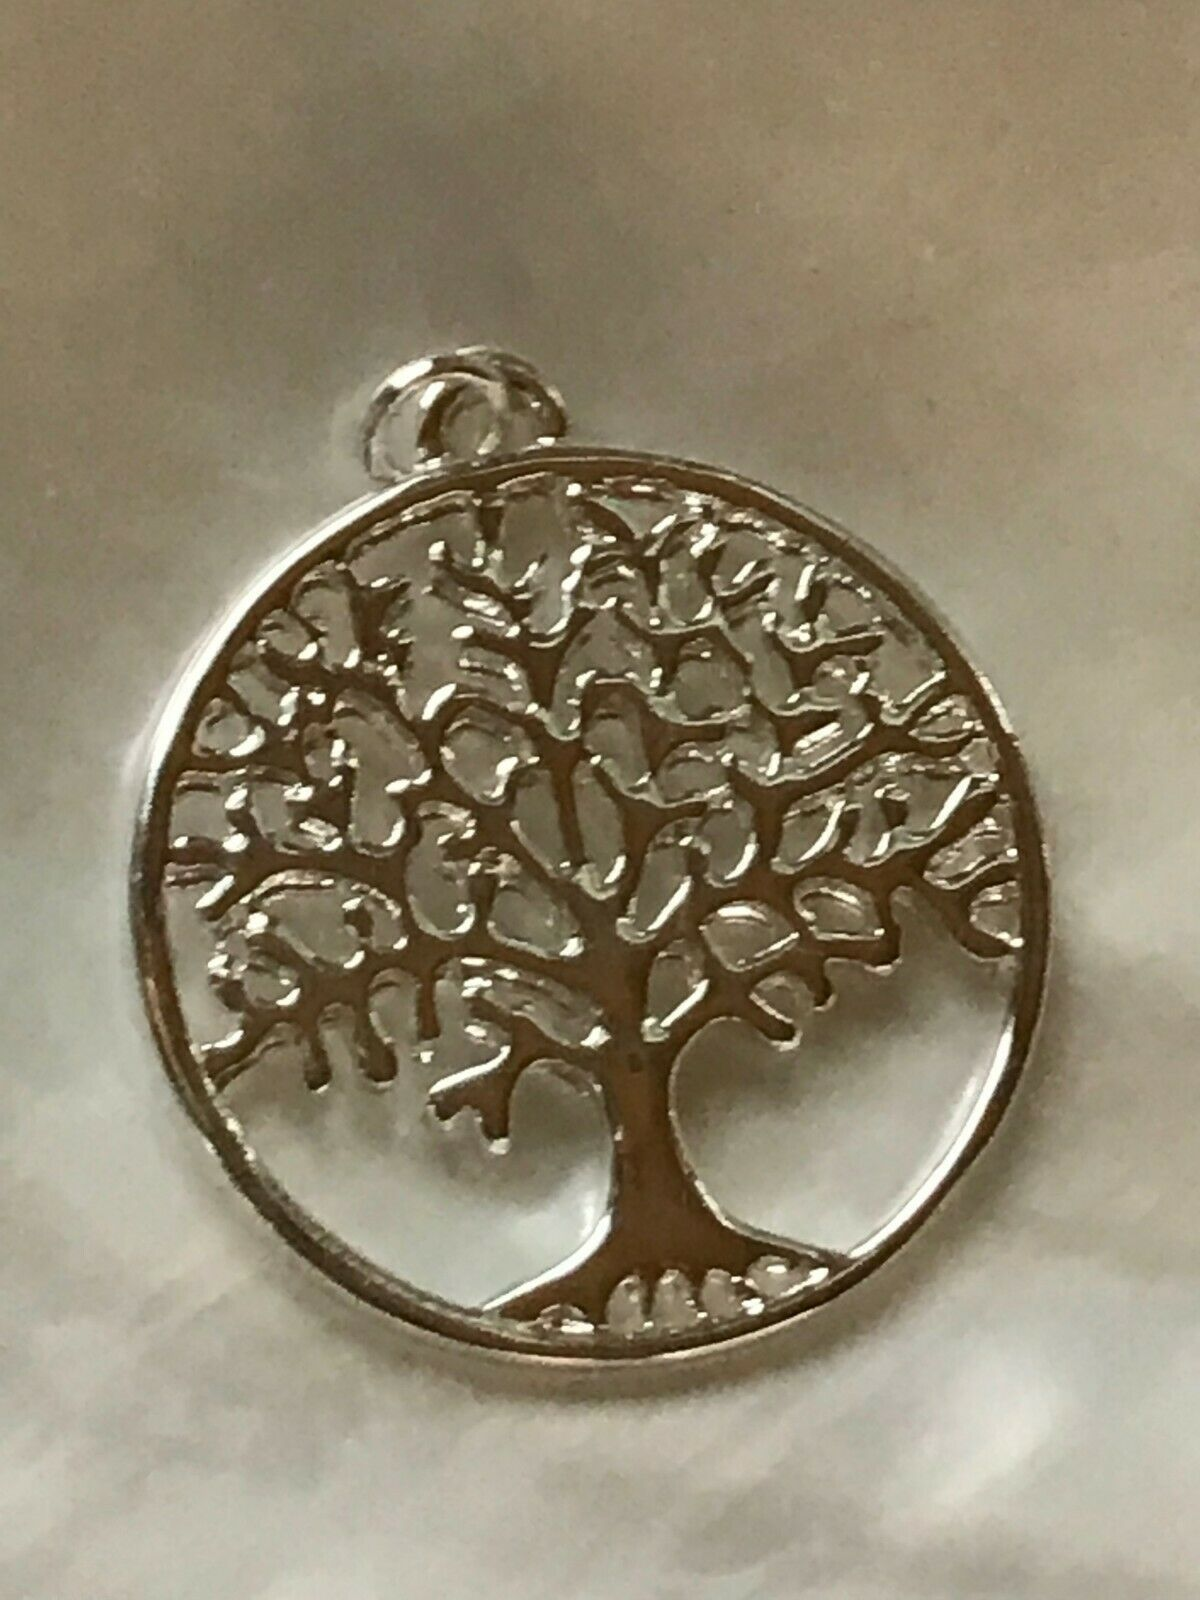 Primary image for Estate Open SIlvertone Circle with Cut-out Deciduous Tree Pendant – 7/8th's inch